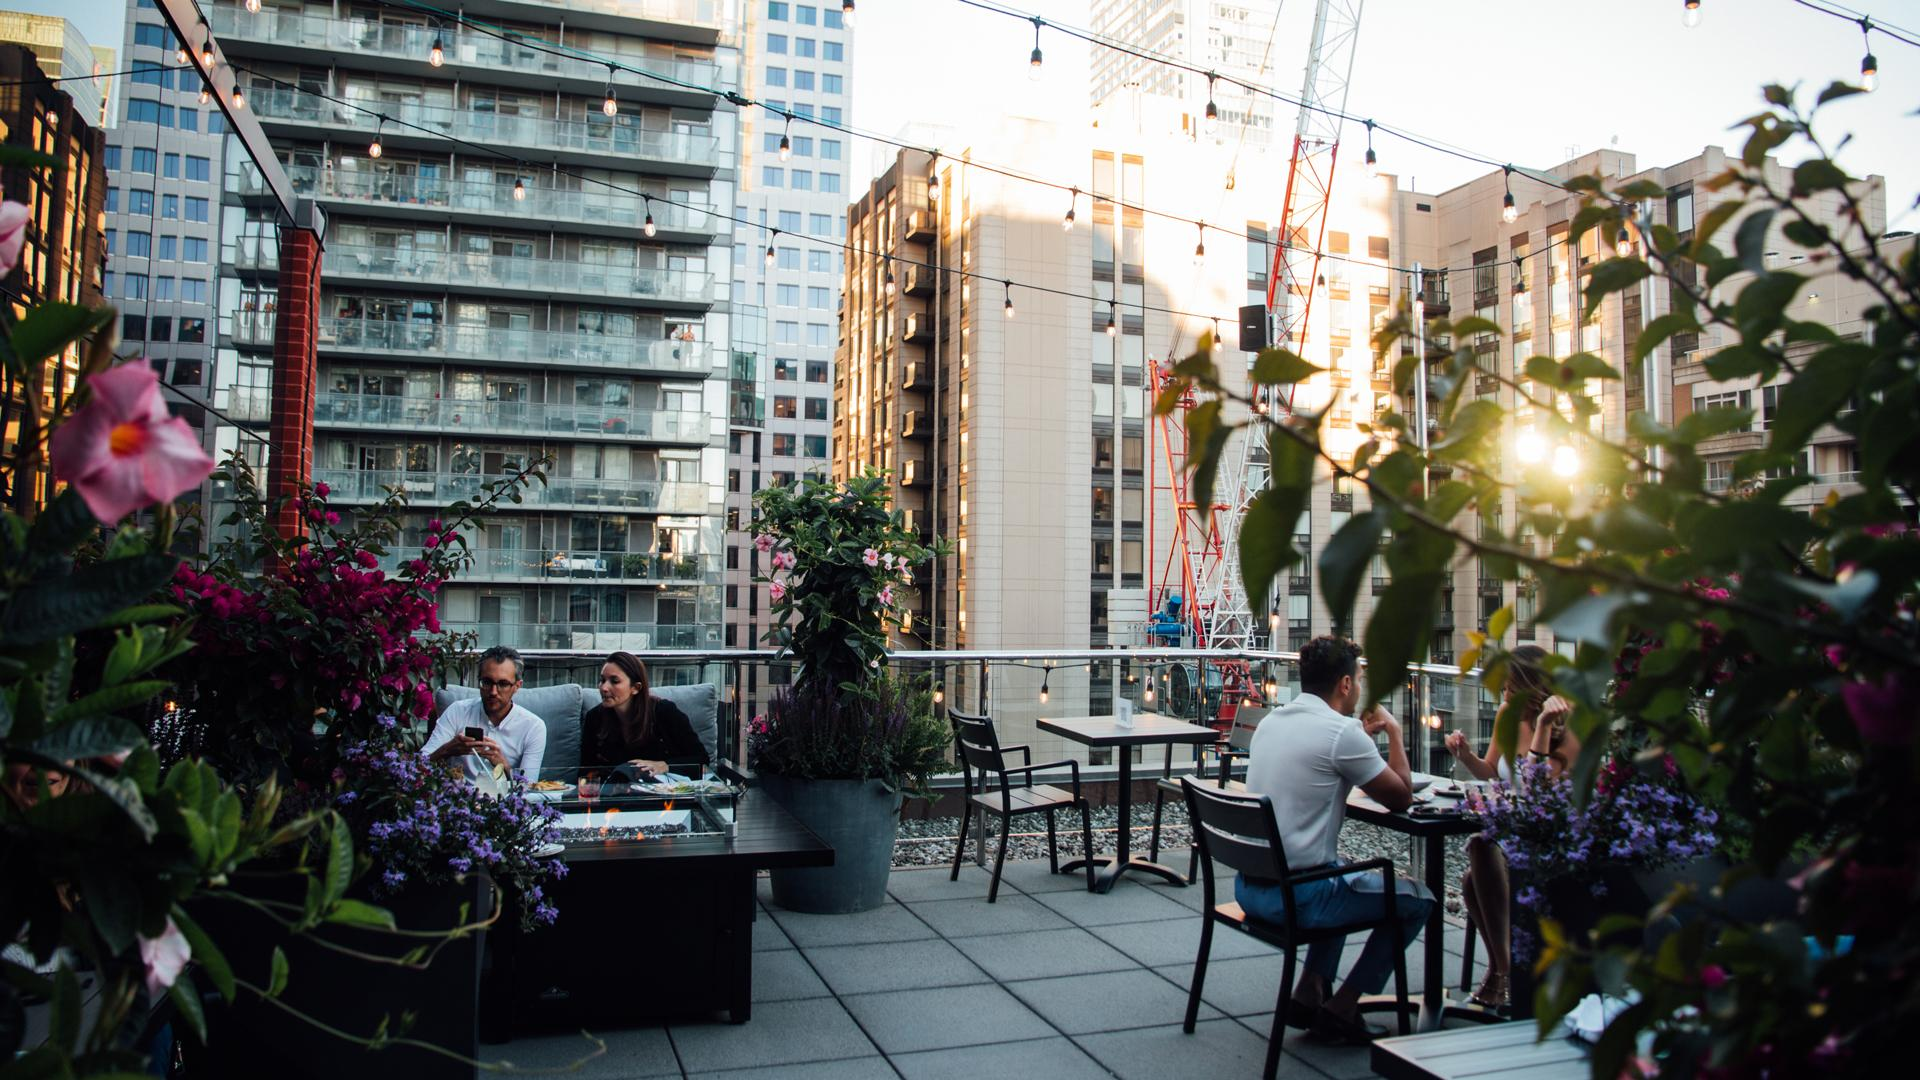 The best rooftop patios in Toronto | People dine on the patio at Victor Rooftop Terrace